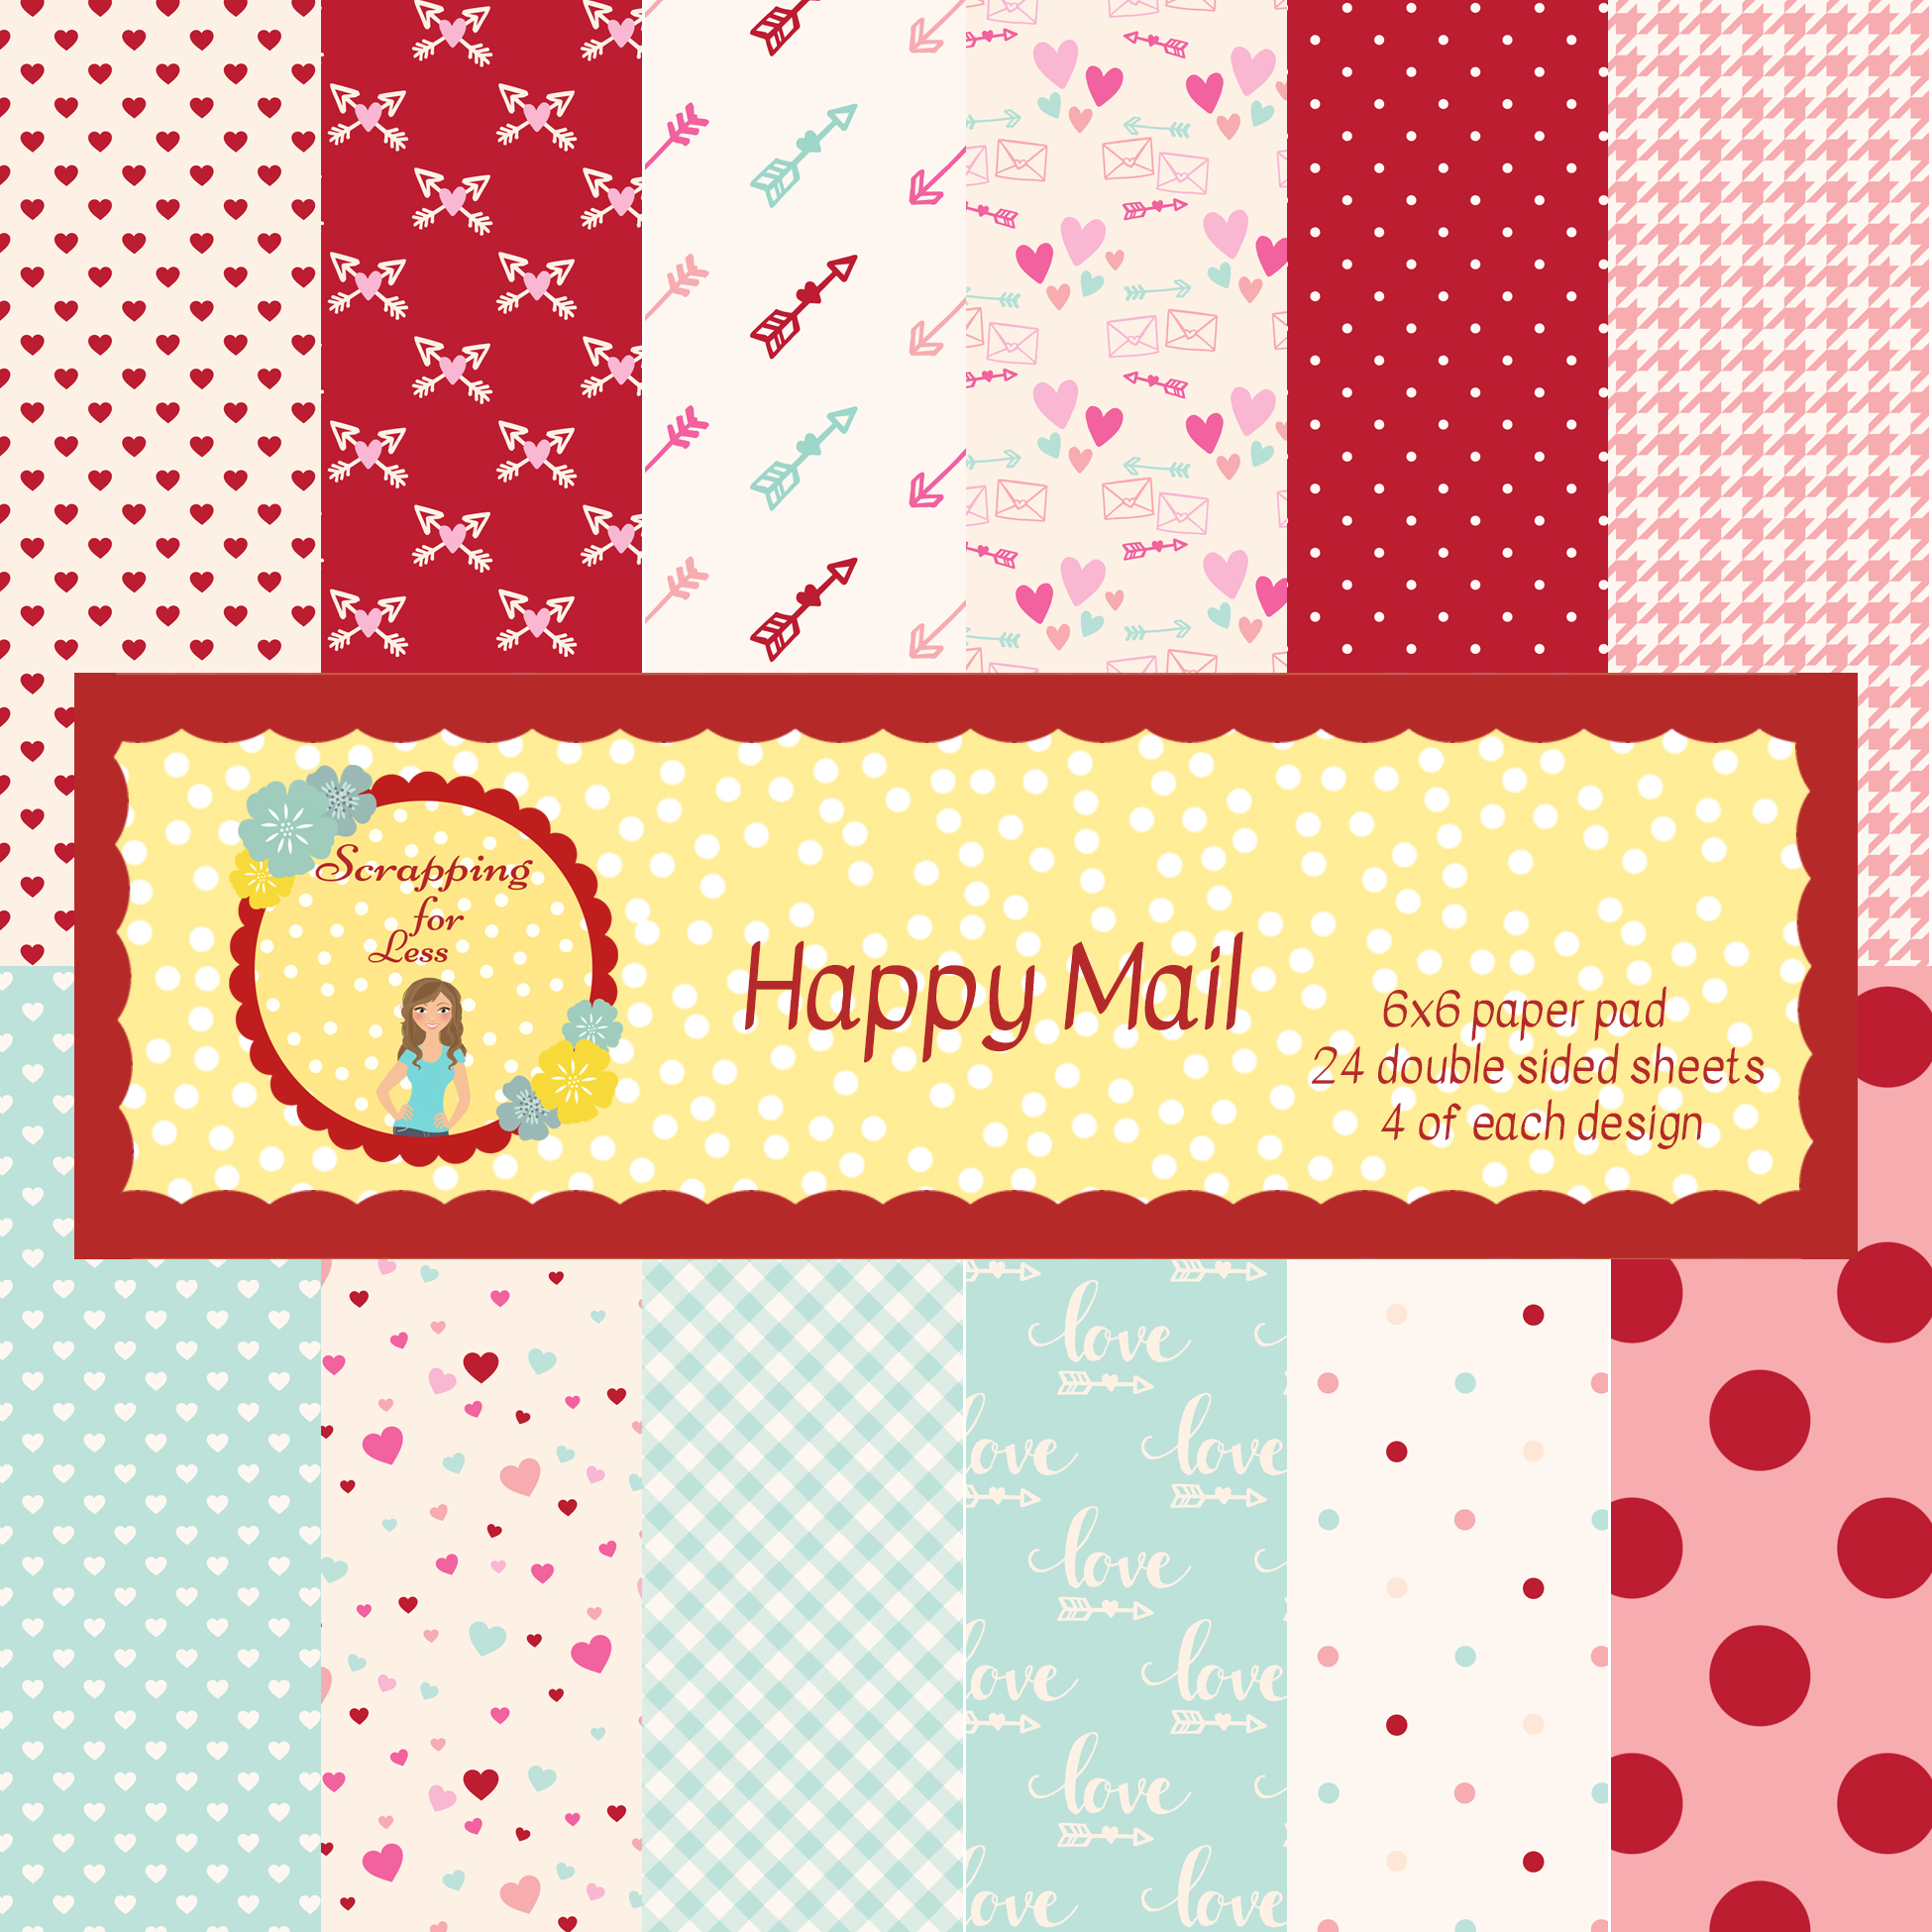 Scrapping for Less Happy Mail 6x6 Paper Pad